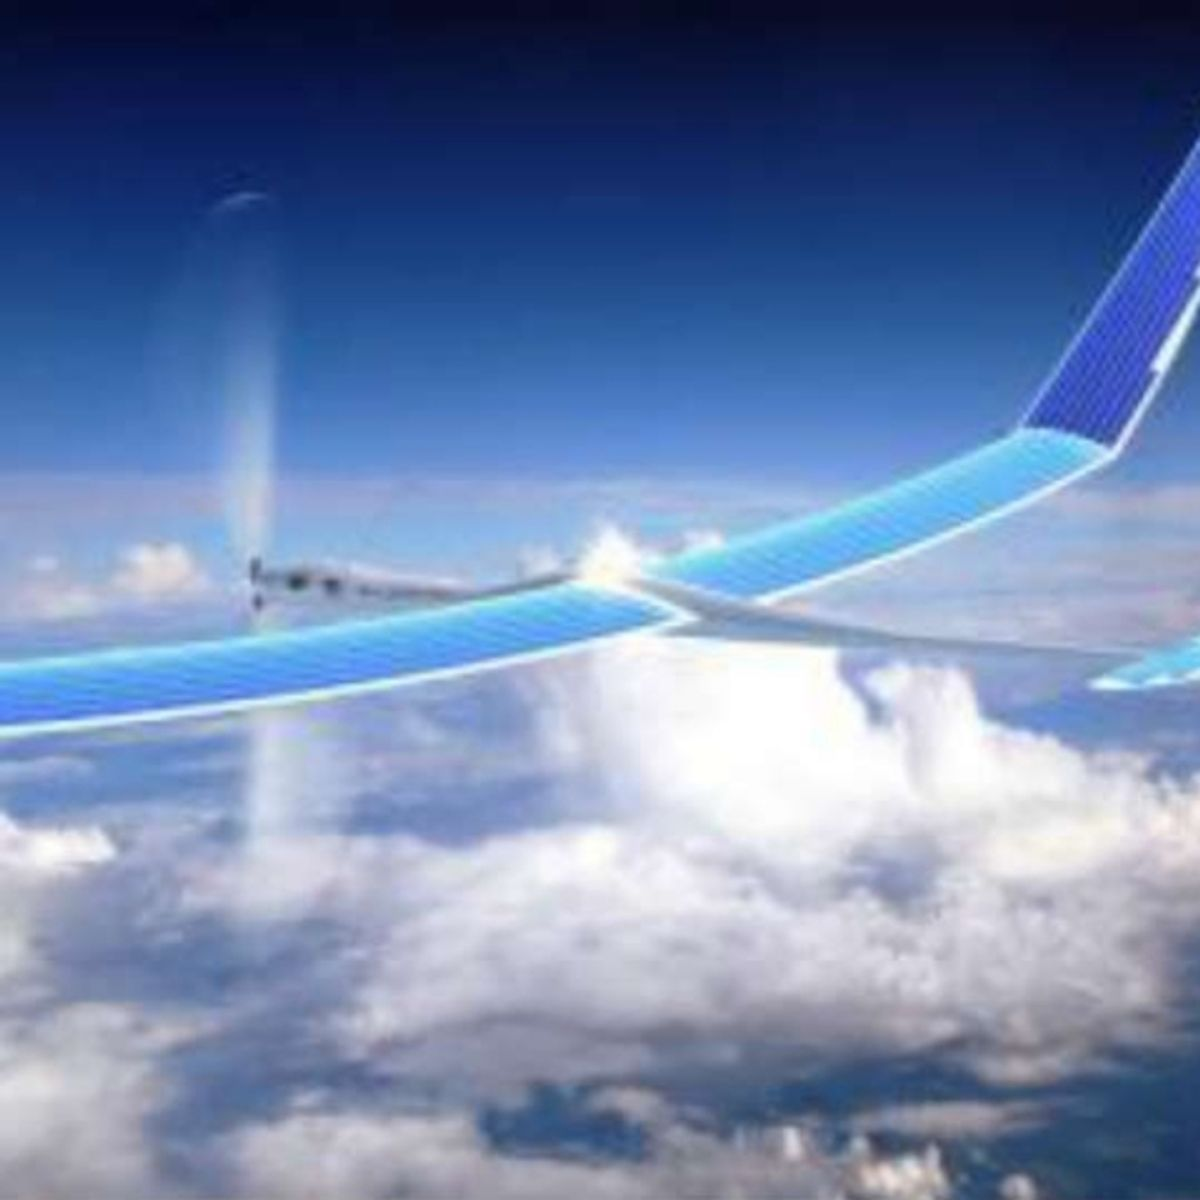 Alphabet shuts down Titan solar-powered drone project